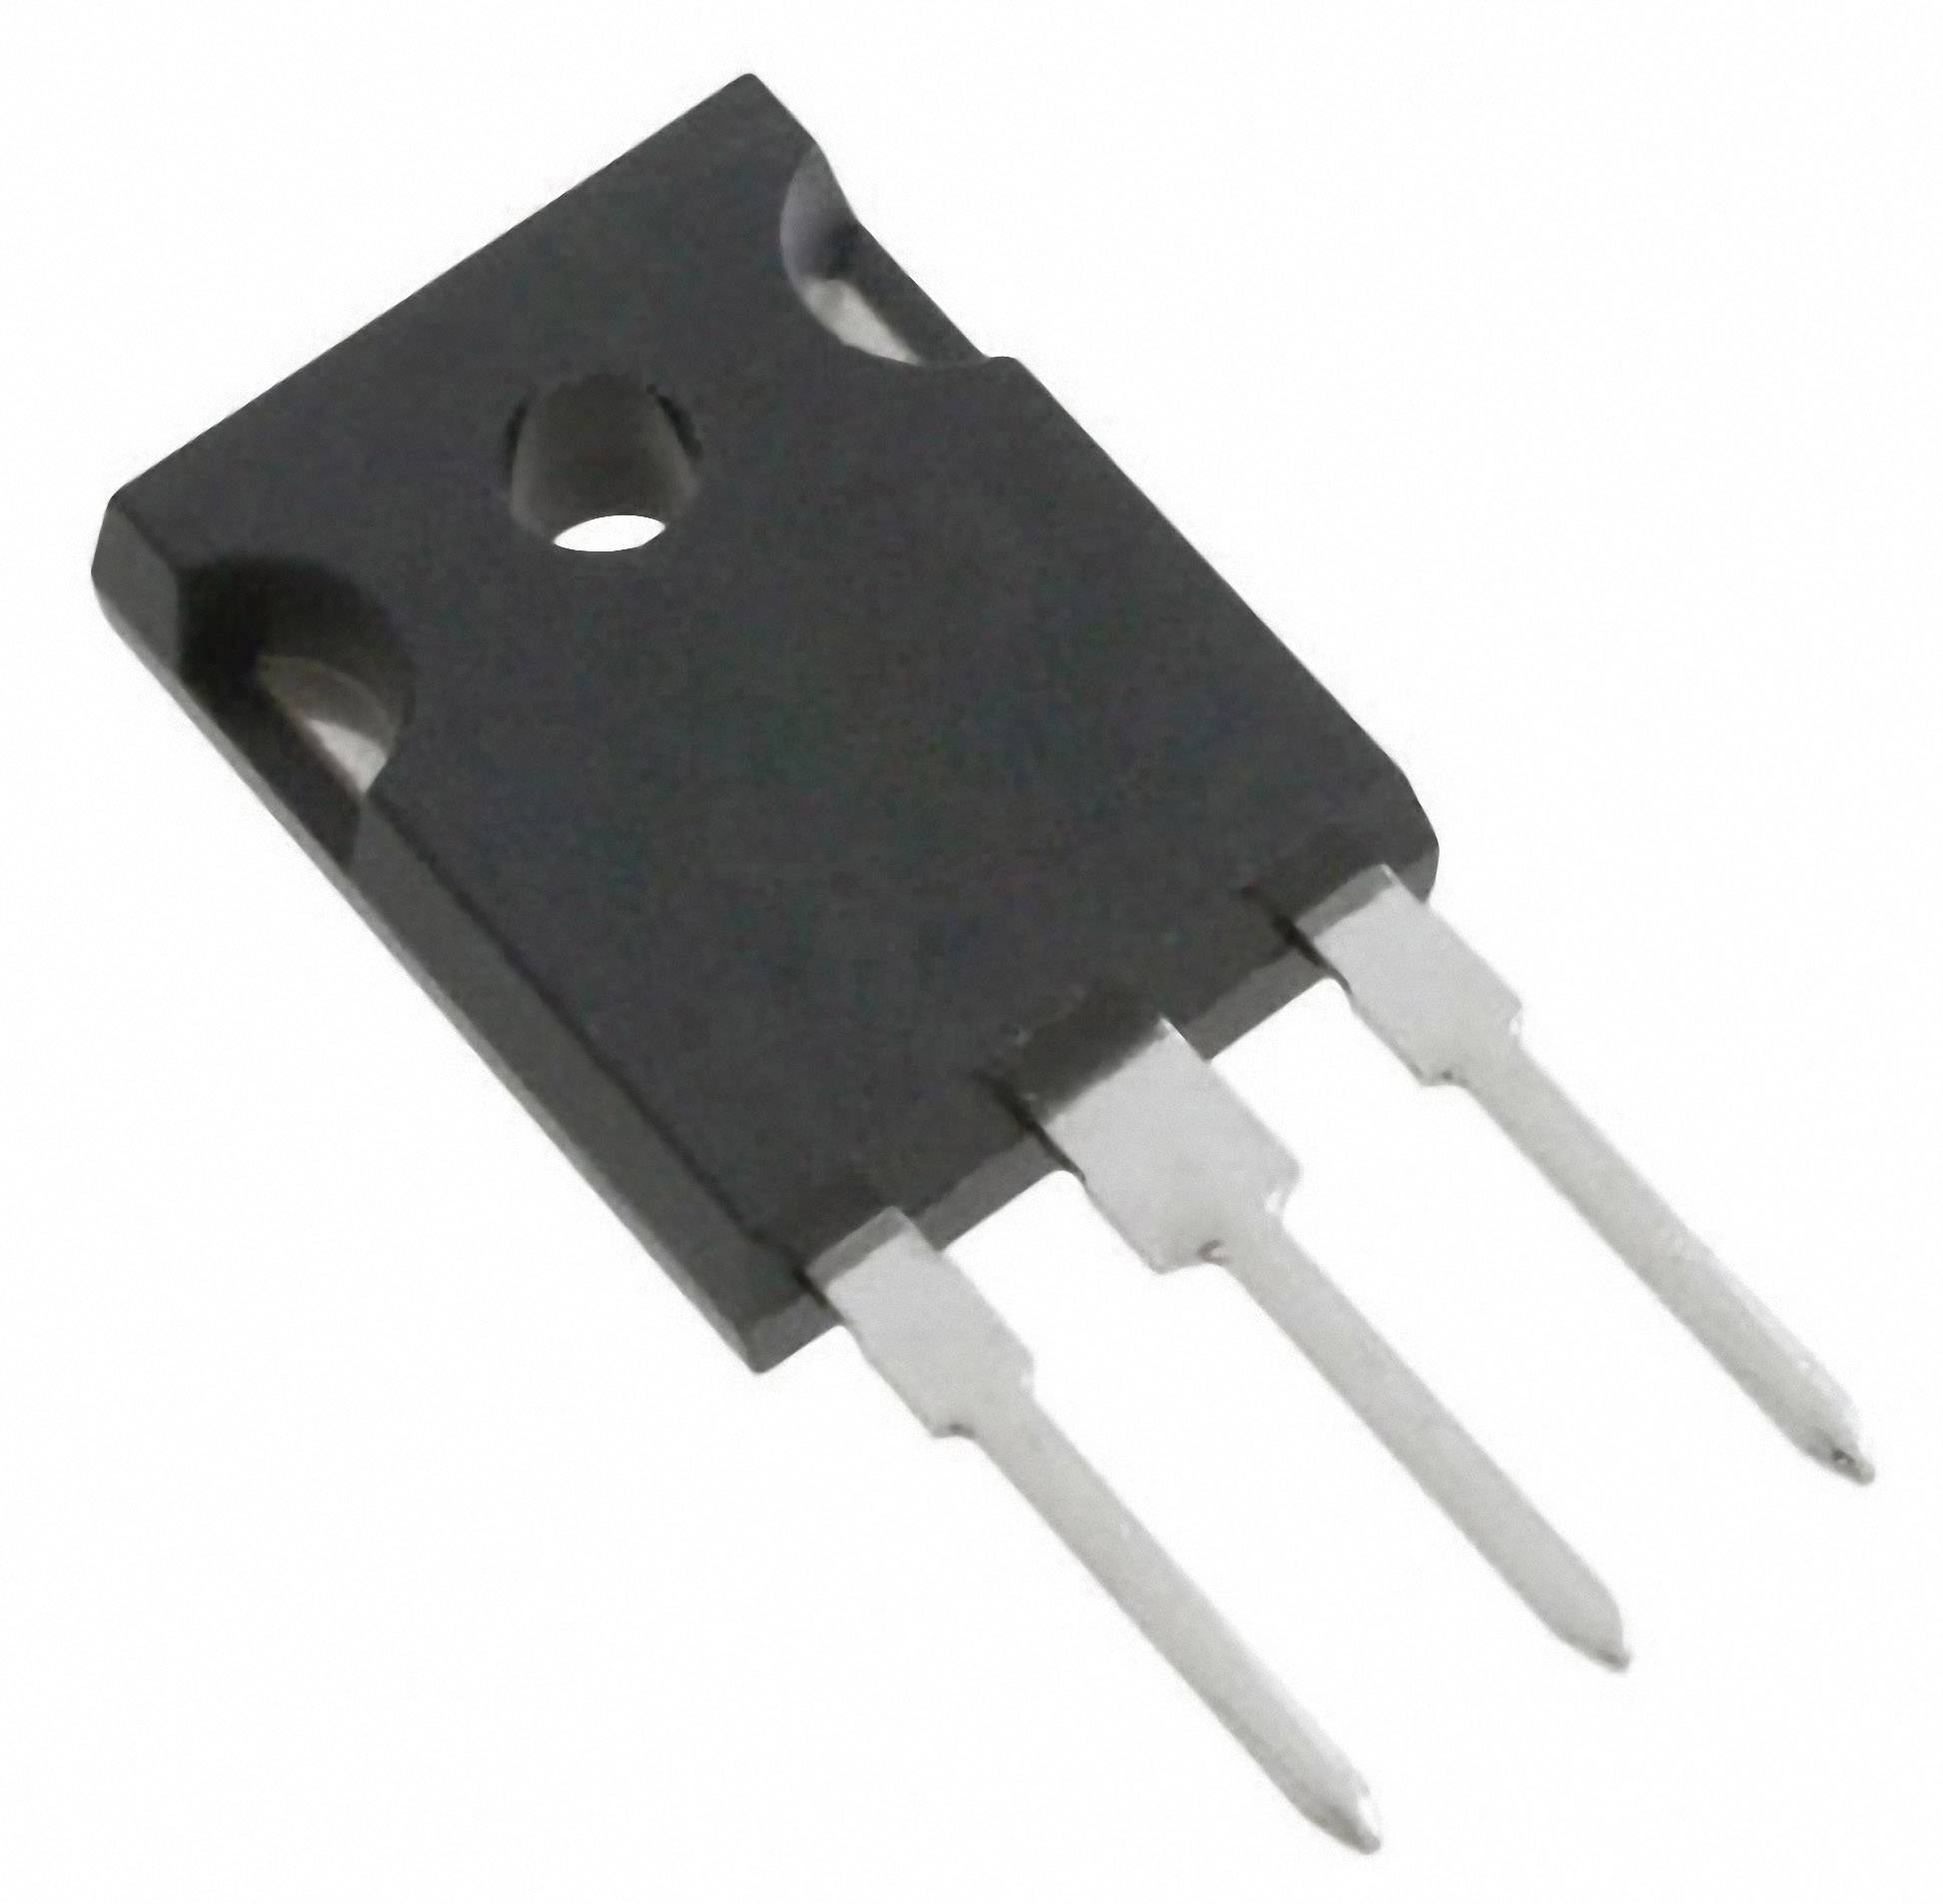 Tranzistor IGBT ON Semiconductor HGTG30N60B3D, TO-247 , 600 V, samostatný, standardní